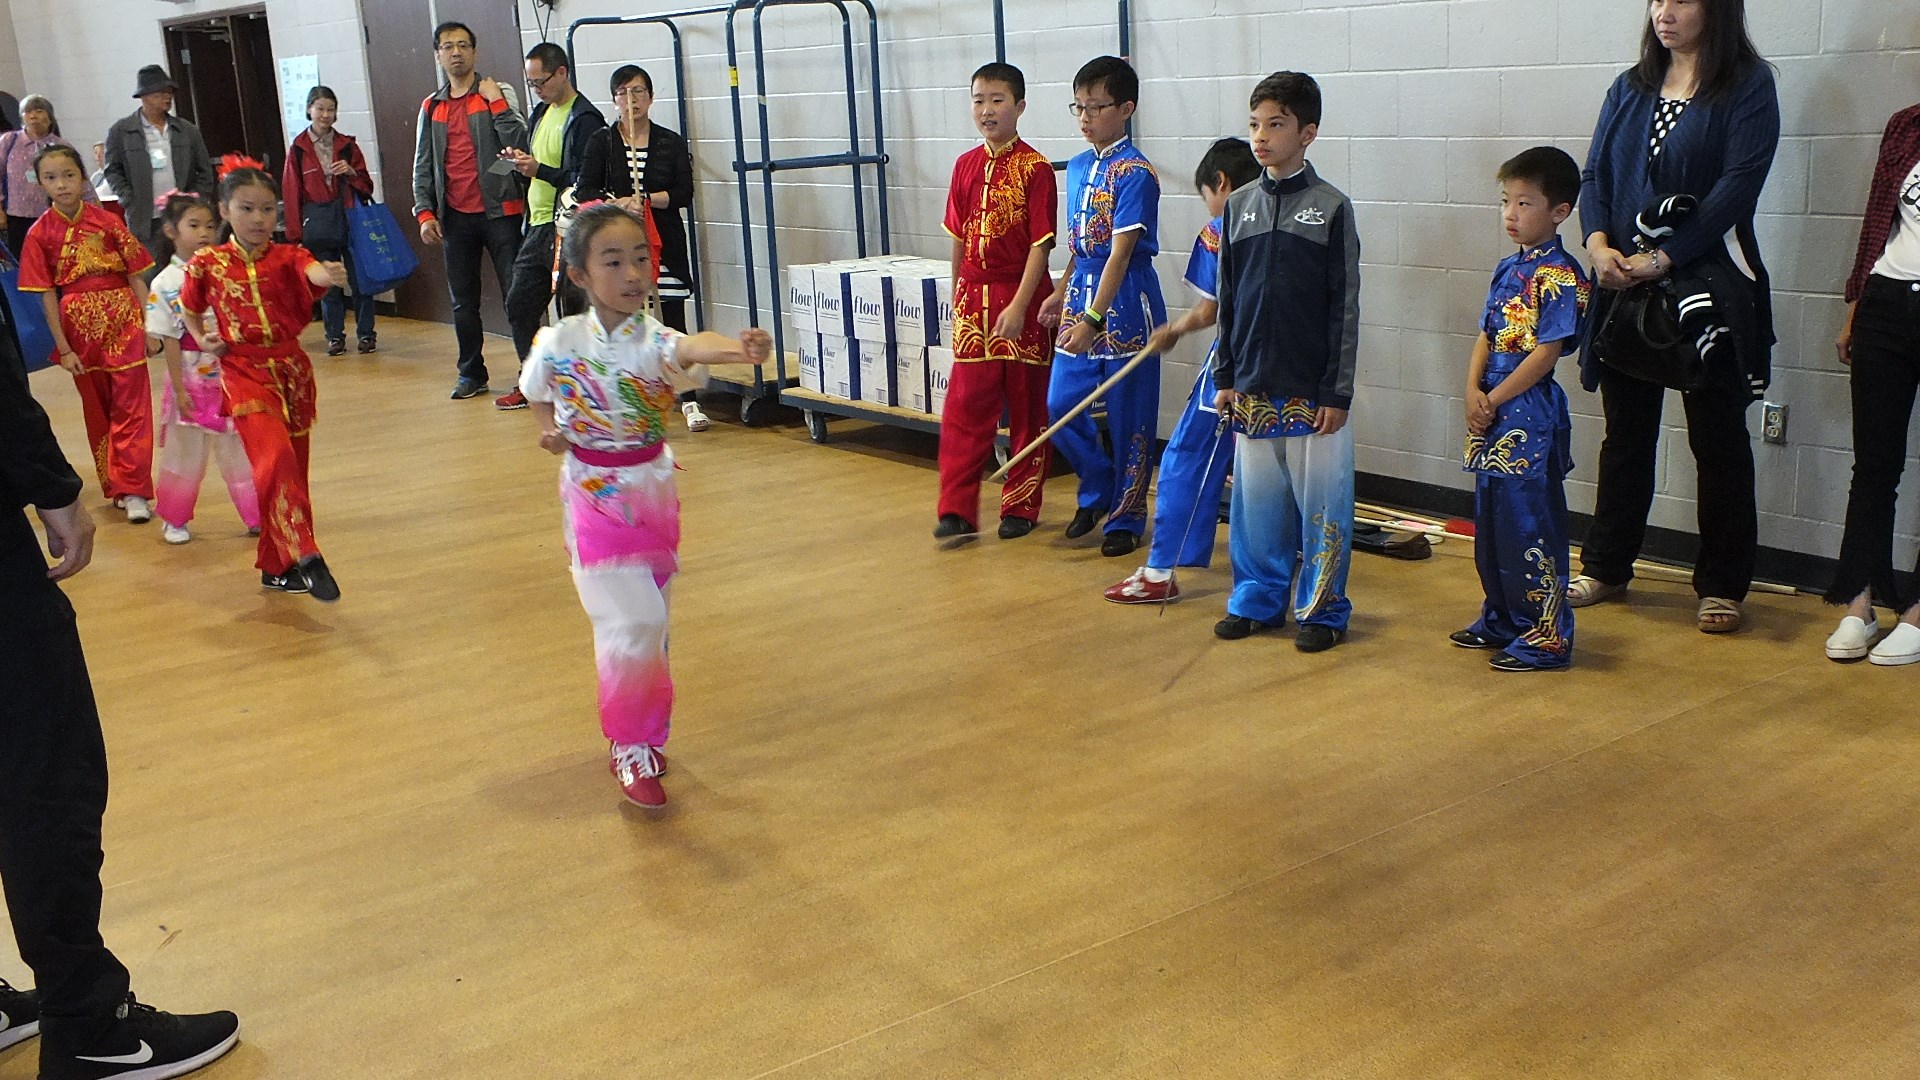 wayland-li-wushu-toronto-canada-demo-chinese-cultural-centre-health-awareness-day-2017-2.jpg